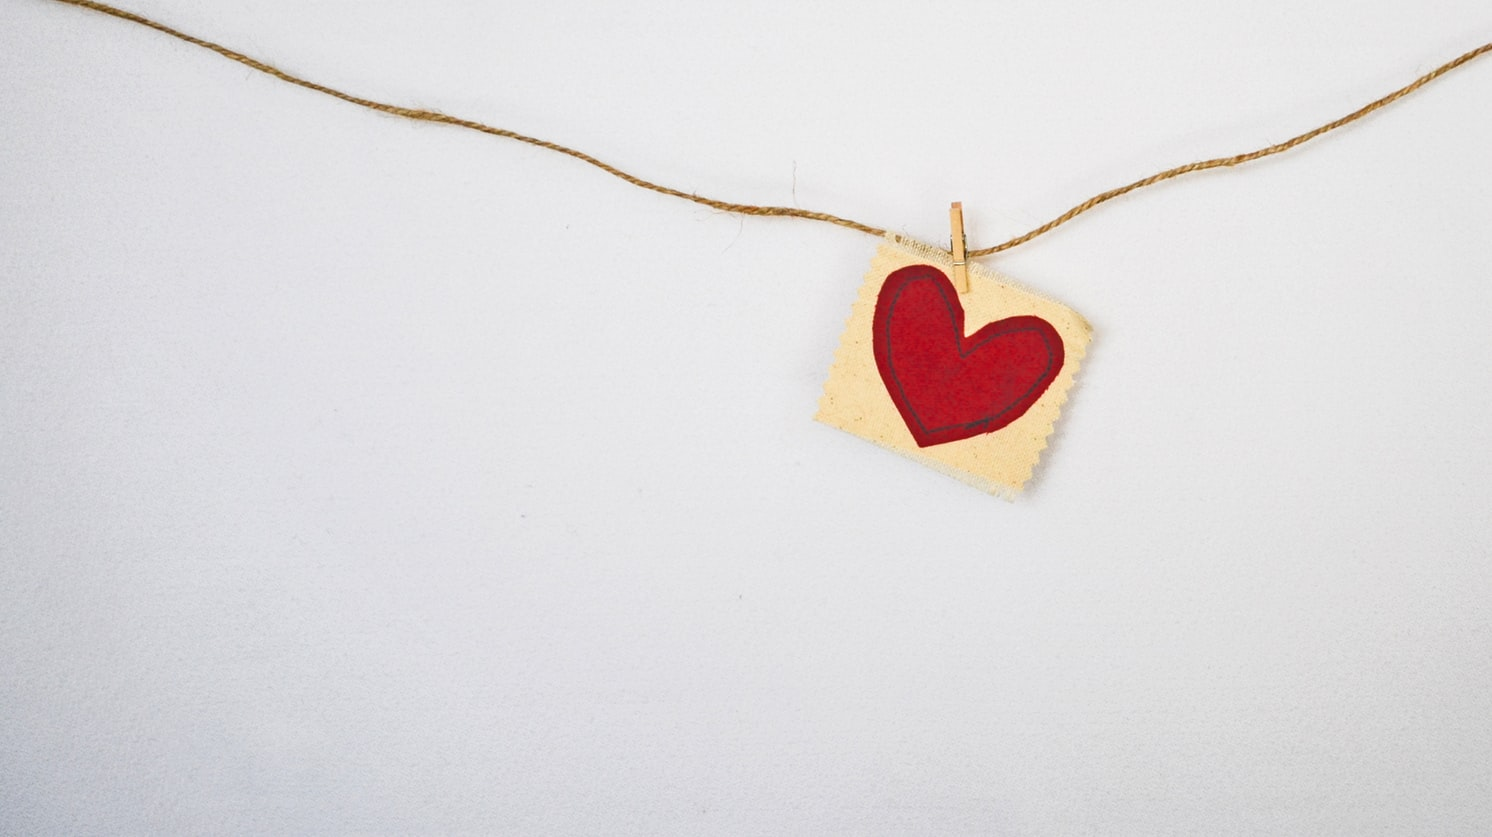 A heart sewn onto a piece of fabric.